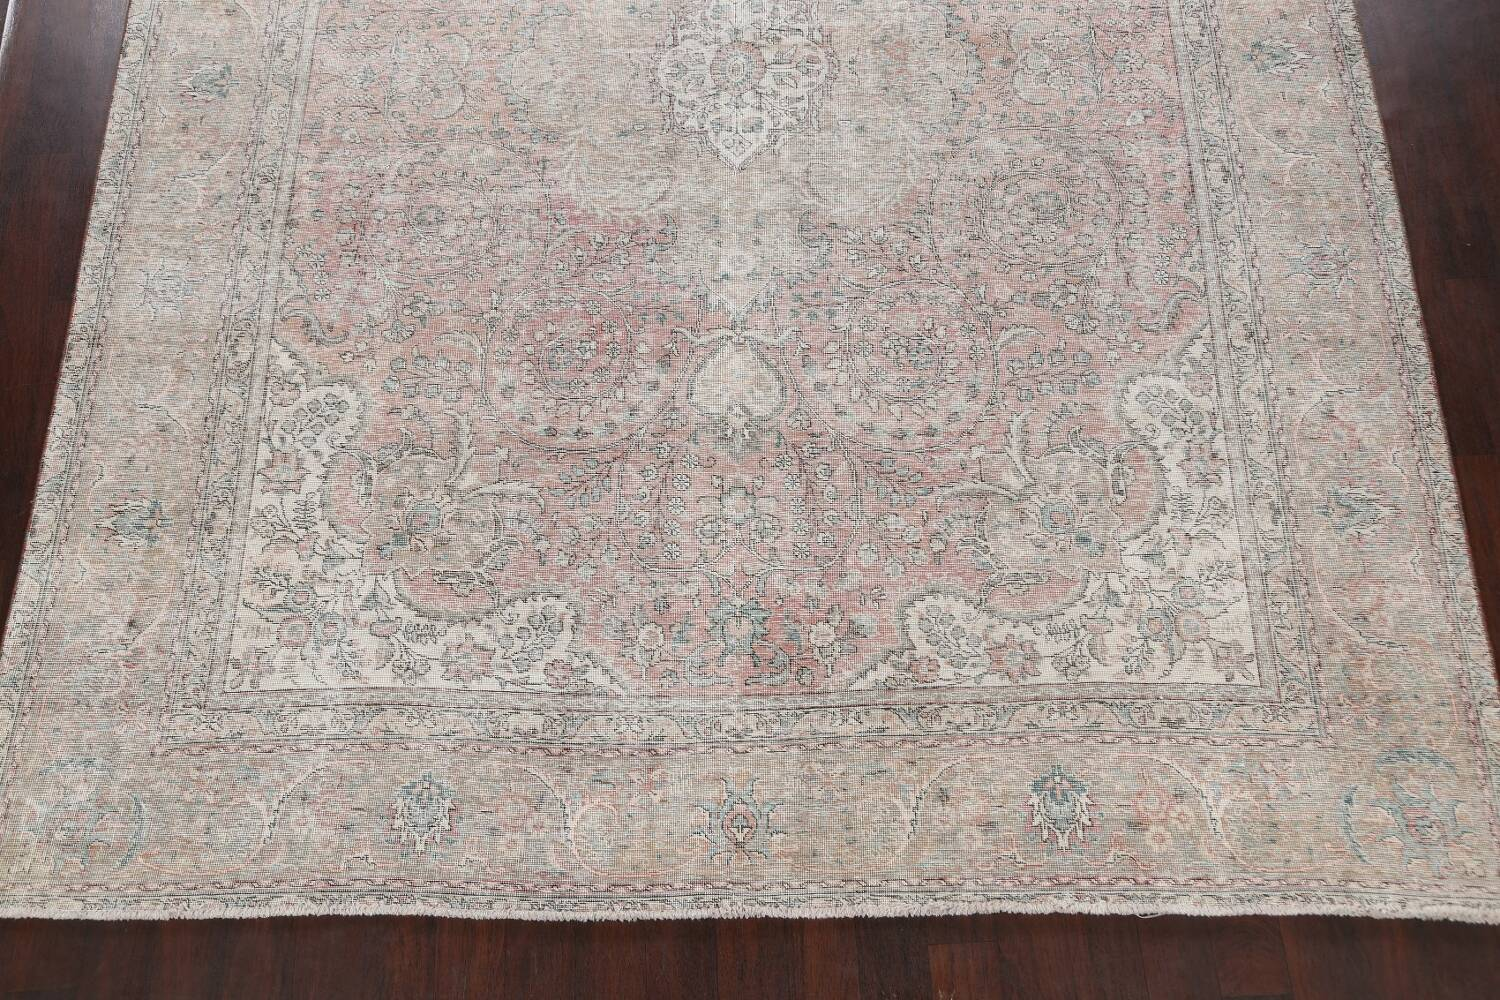 Antique Muted Distressed Tabriz Persian Area Rug 10x13 image 8